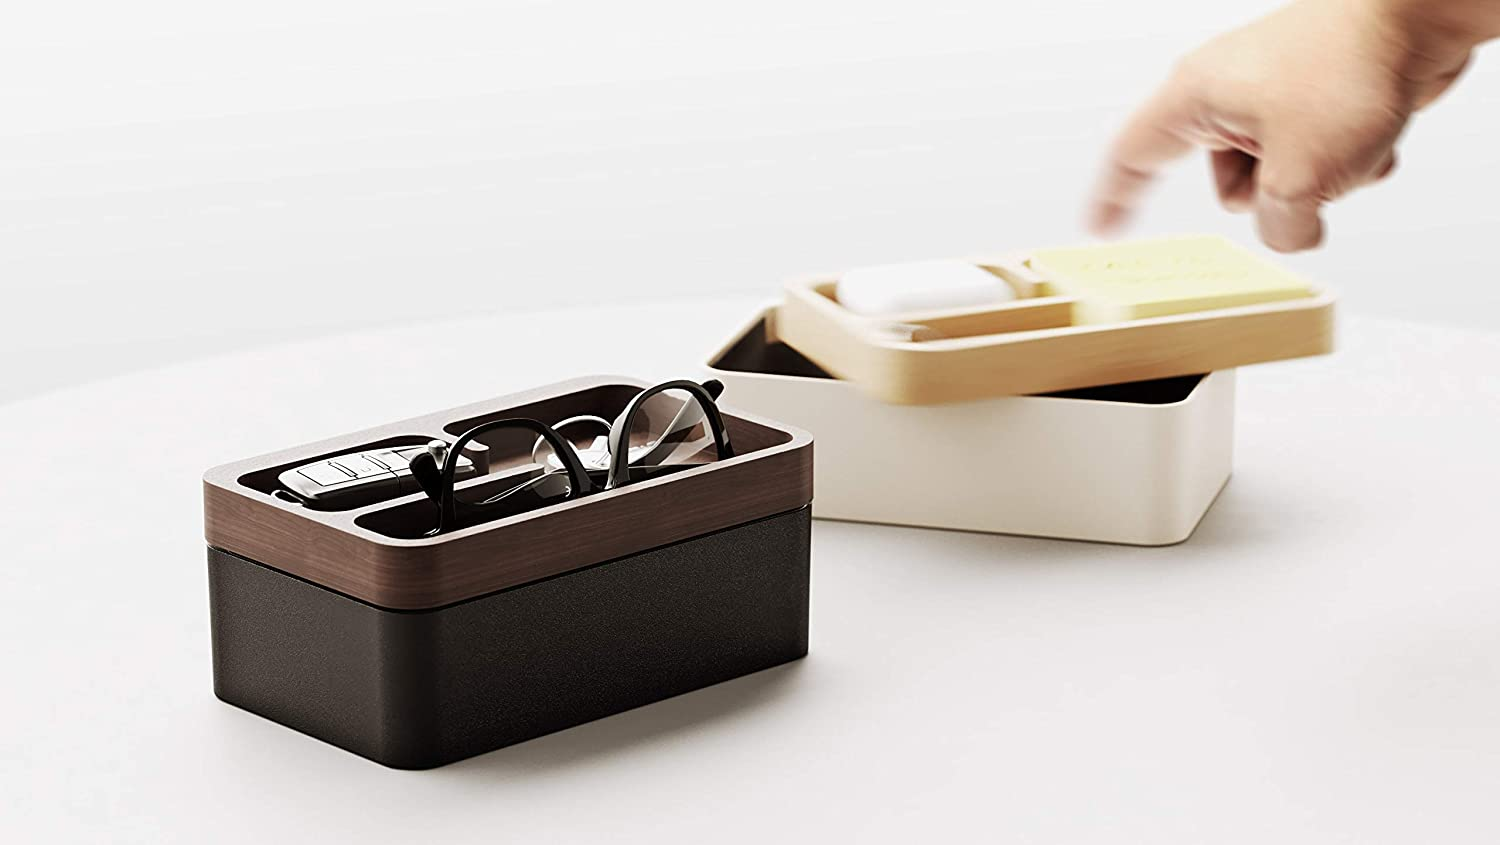 Revov Tray Box Year-end annual account Free Shipping New Gift Edition Bottom Aluminum Beech Upper+ Wood